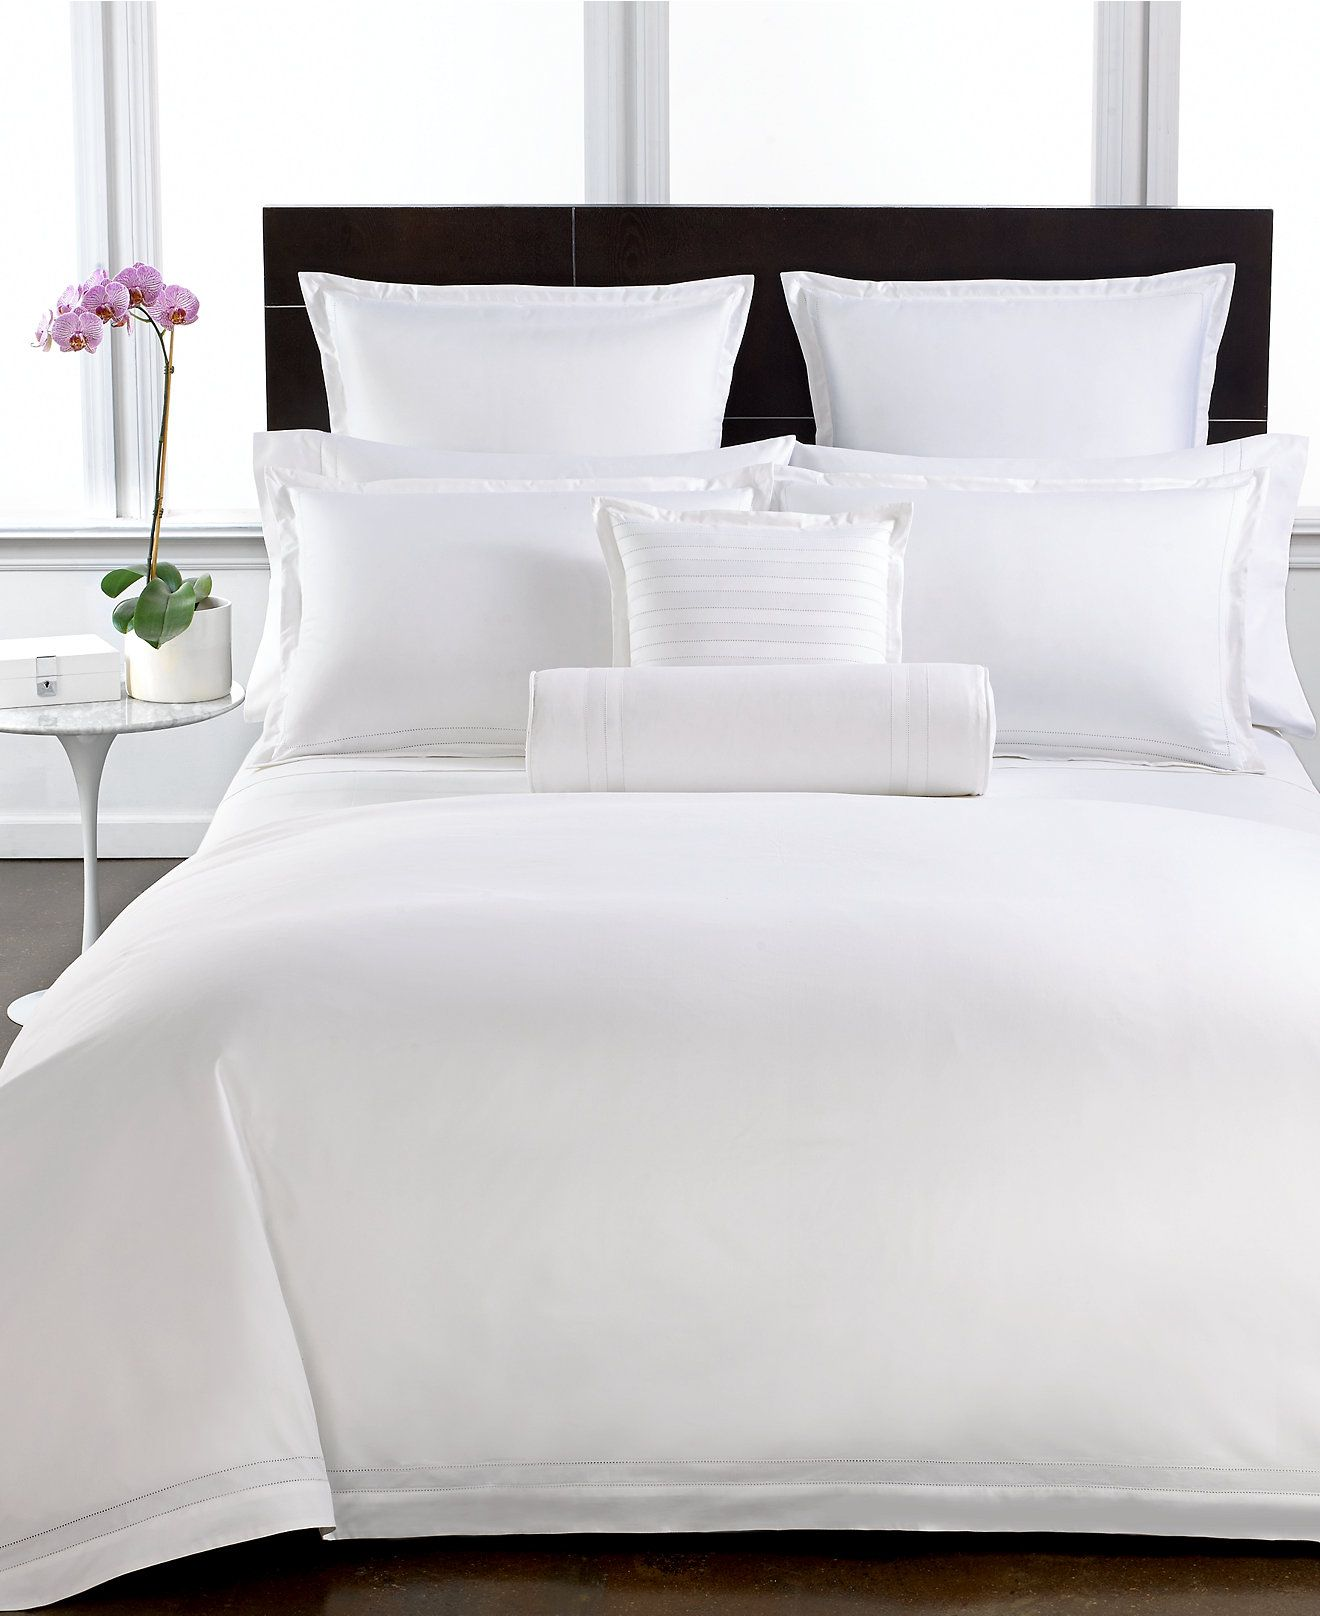 down hotel thread oversized comforter white egyptian today free bath grand product overstock cotton count shipping bedding